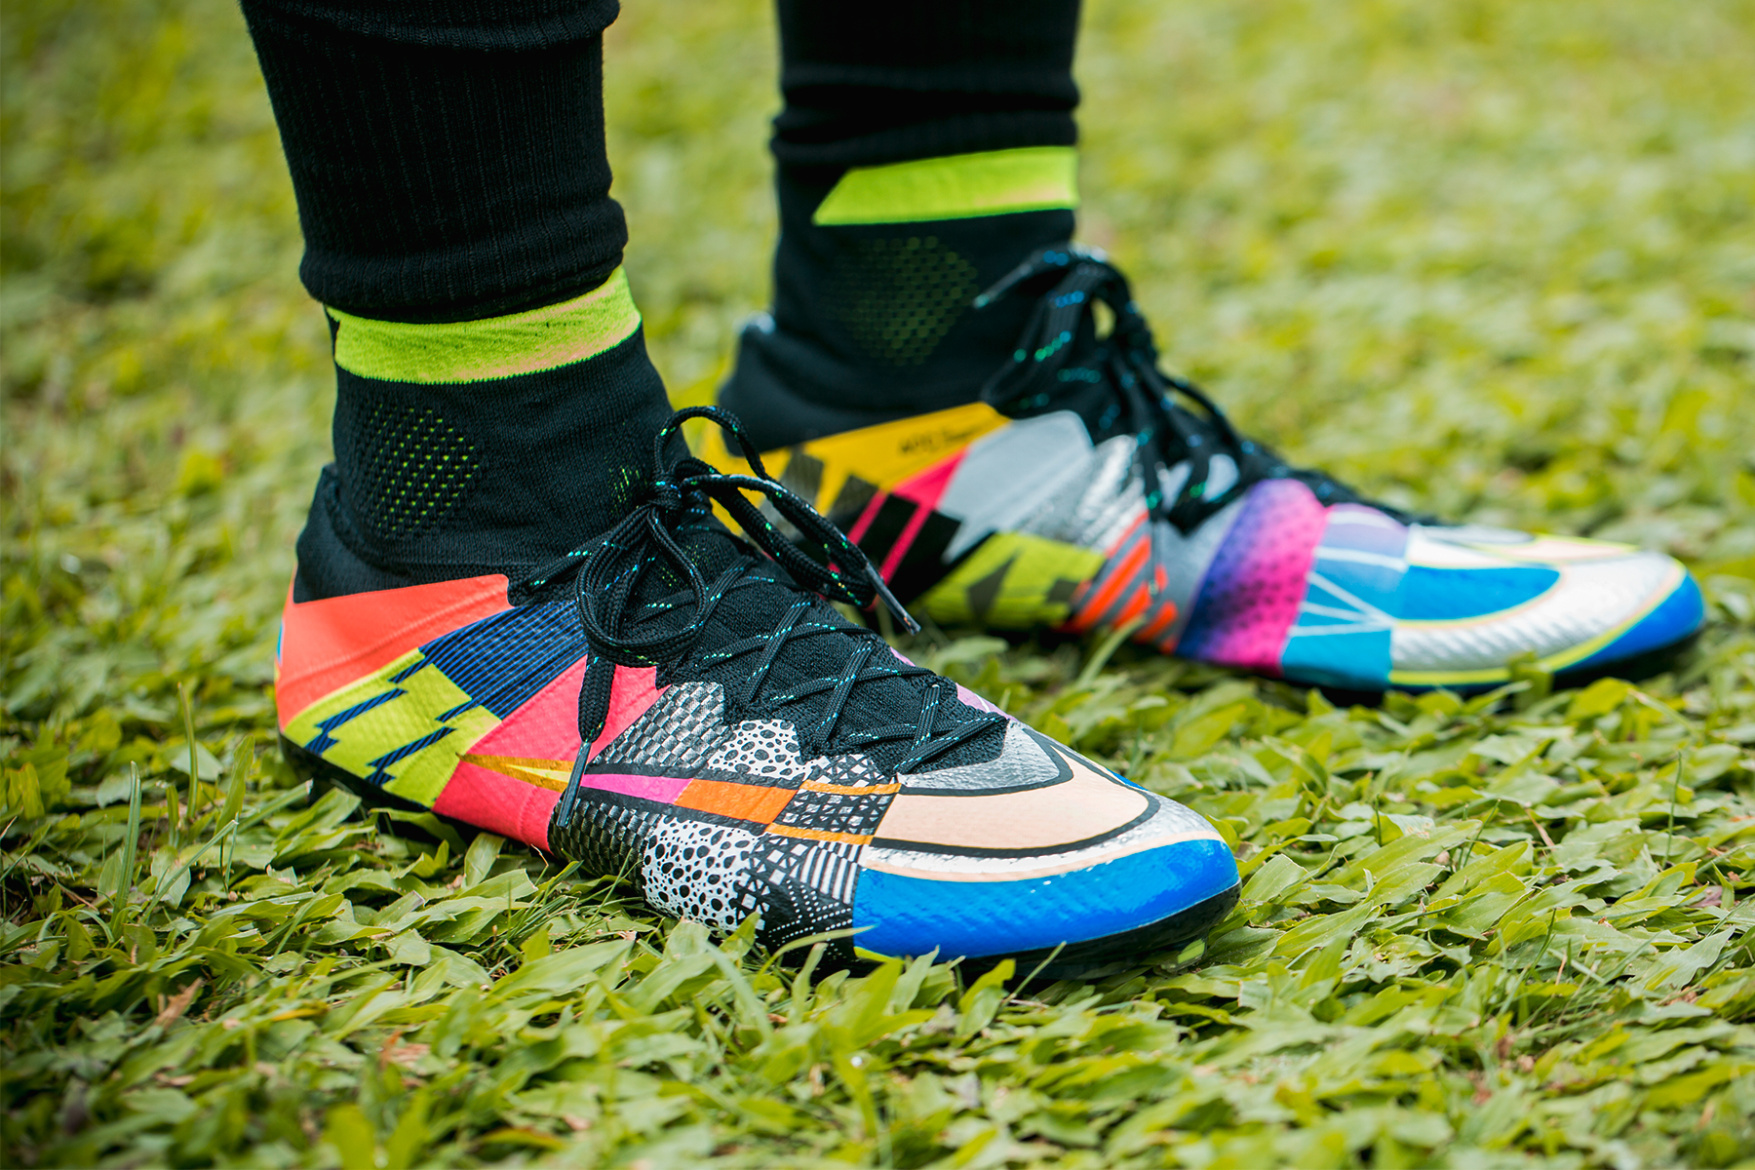 nike-mercurial-superfly-iv-what-the-closer-look-001